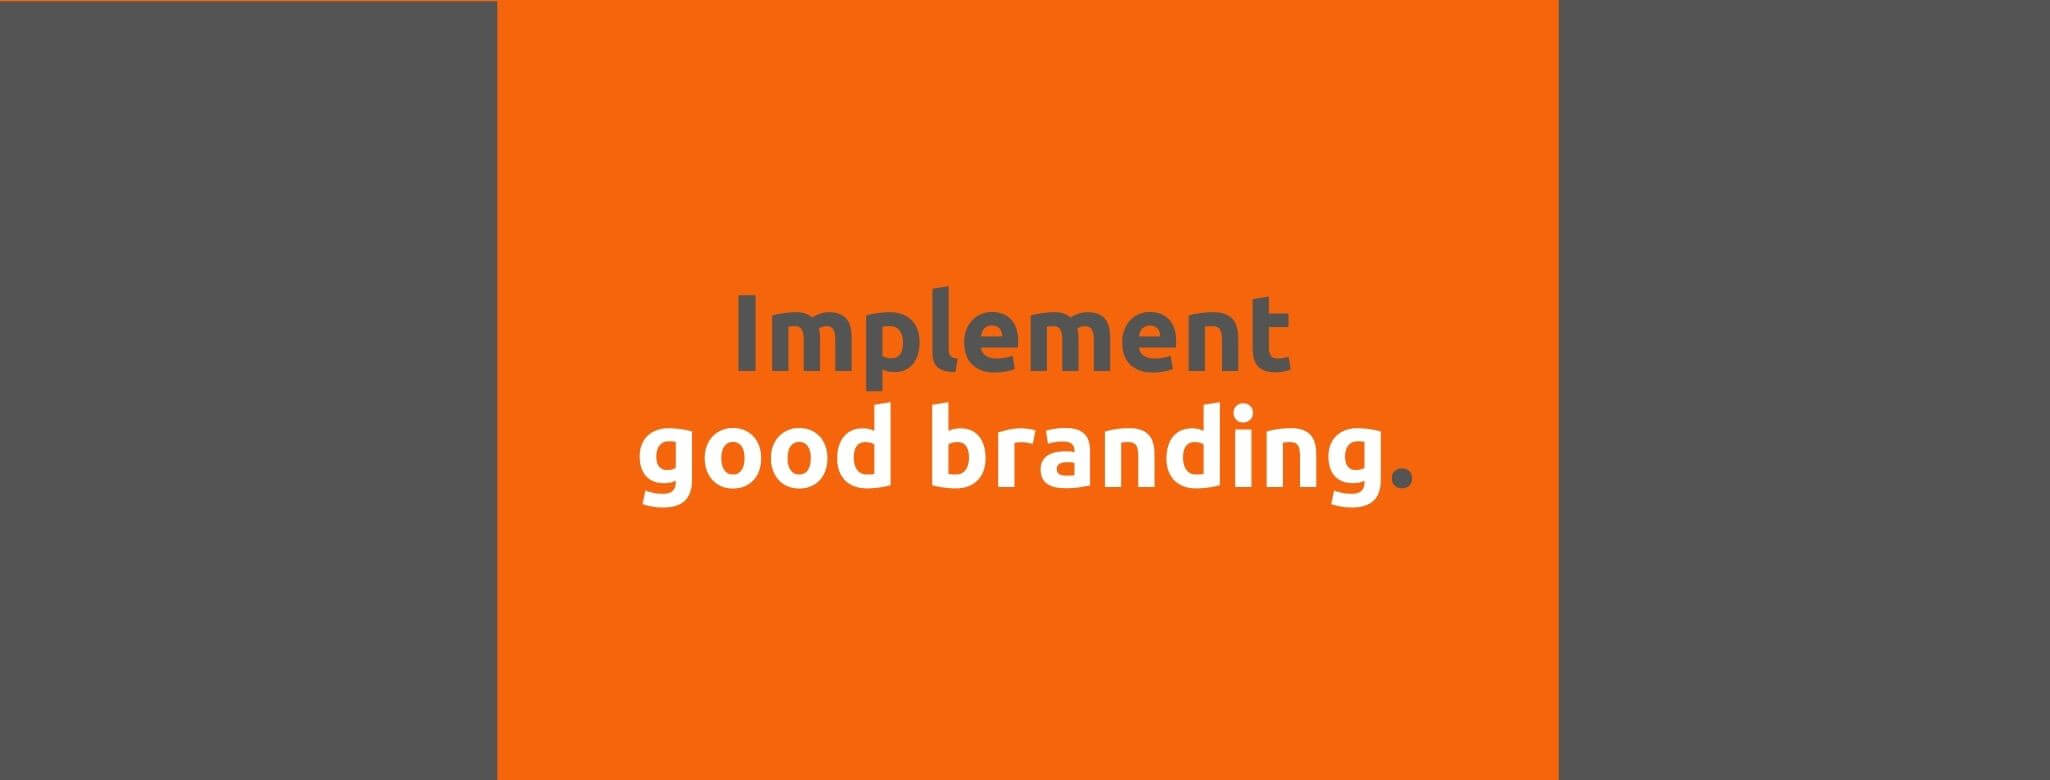 Implement good branding - Customer Expectations - Replyco Helpdesk Software for eCommerce